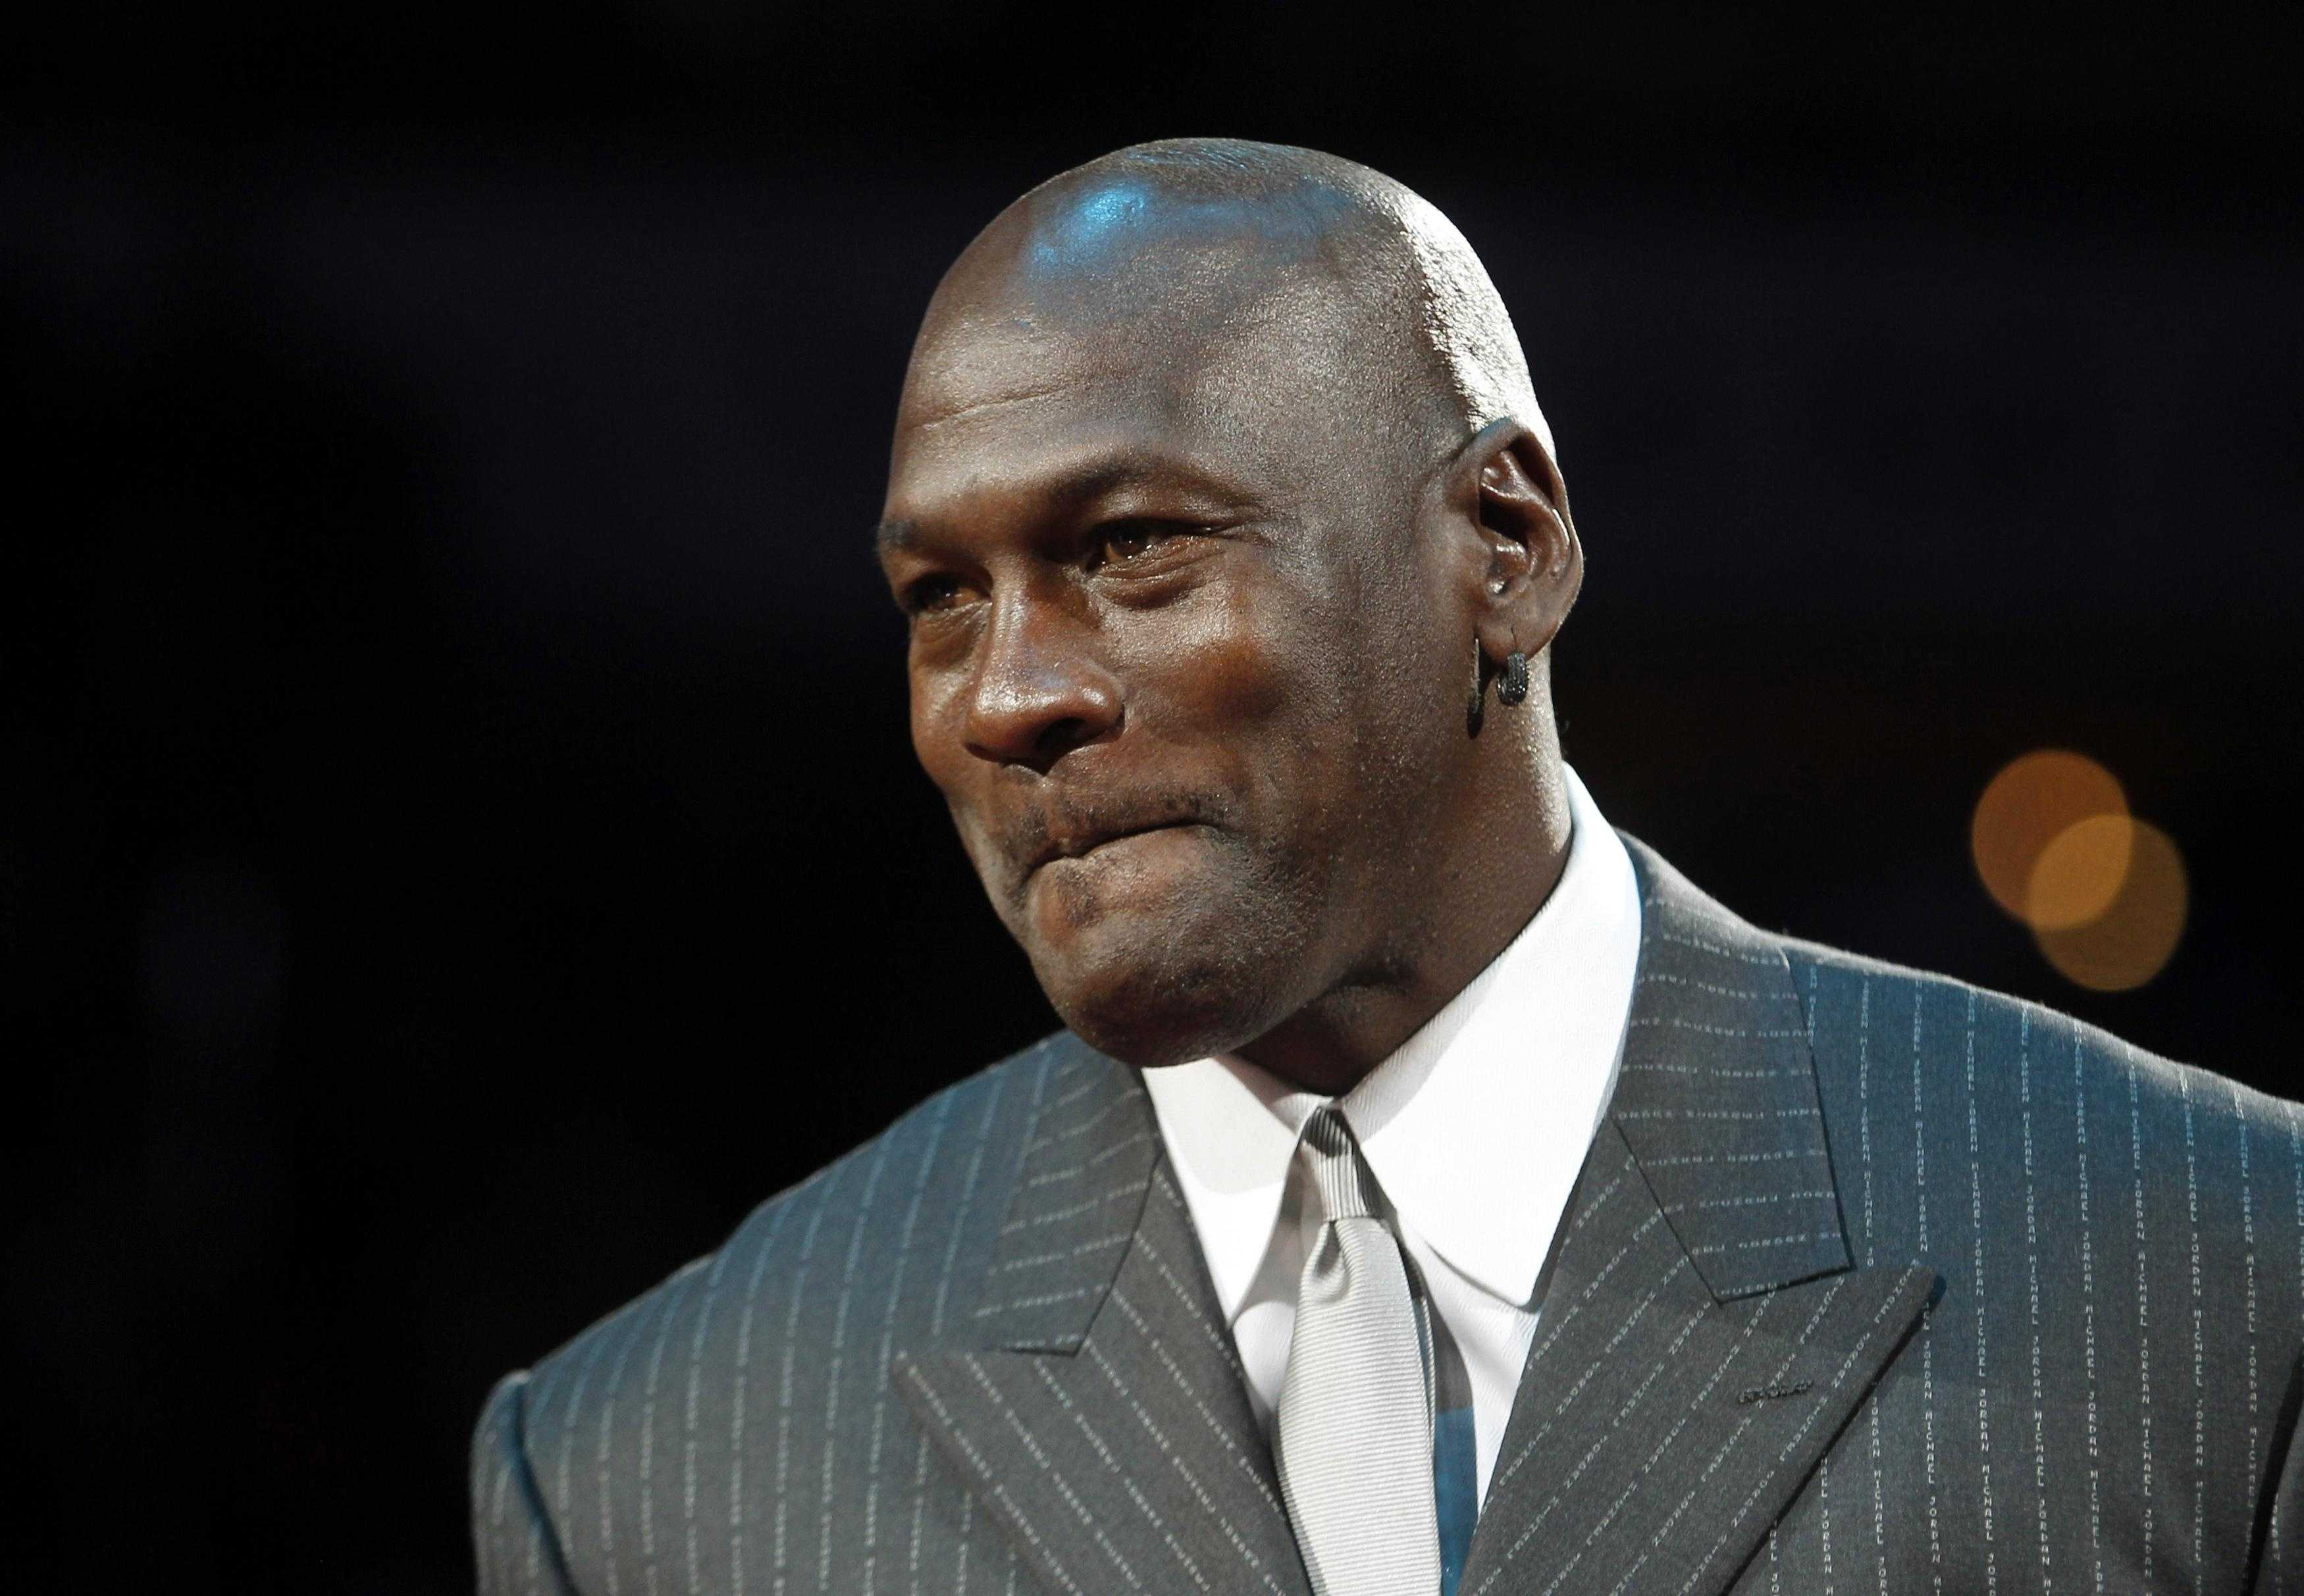 Michael Jordan wins China court ruling after yearslong case